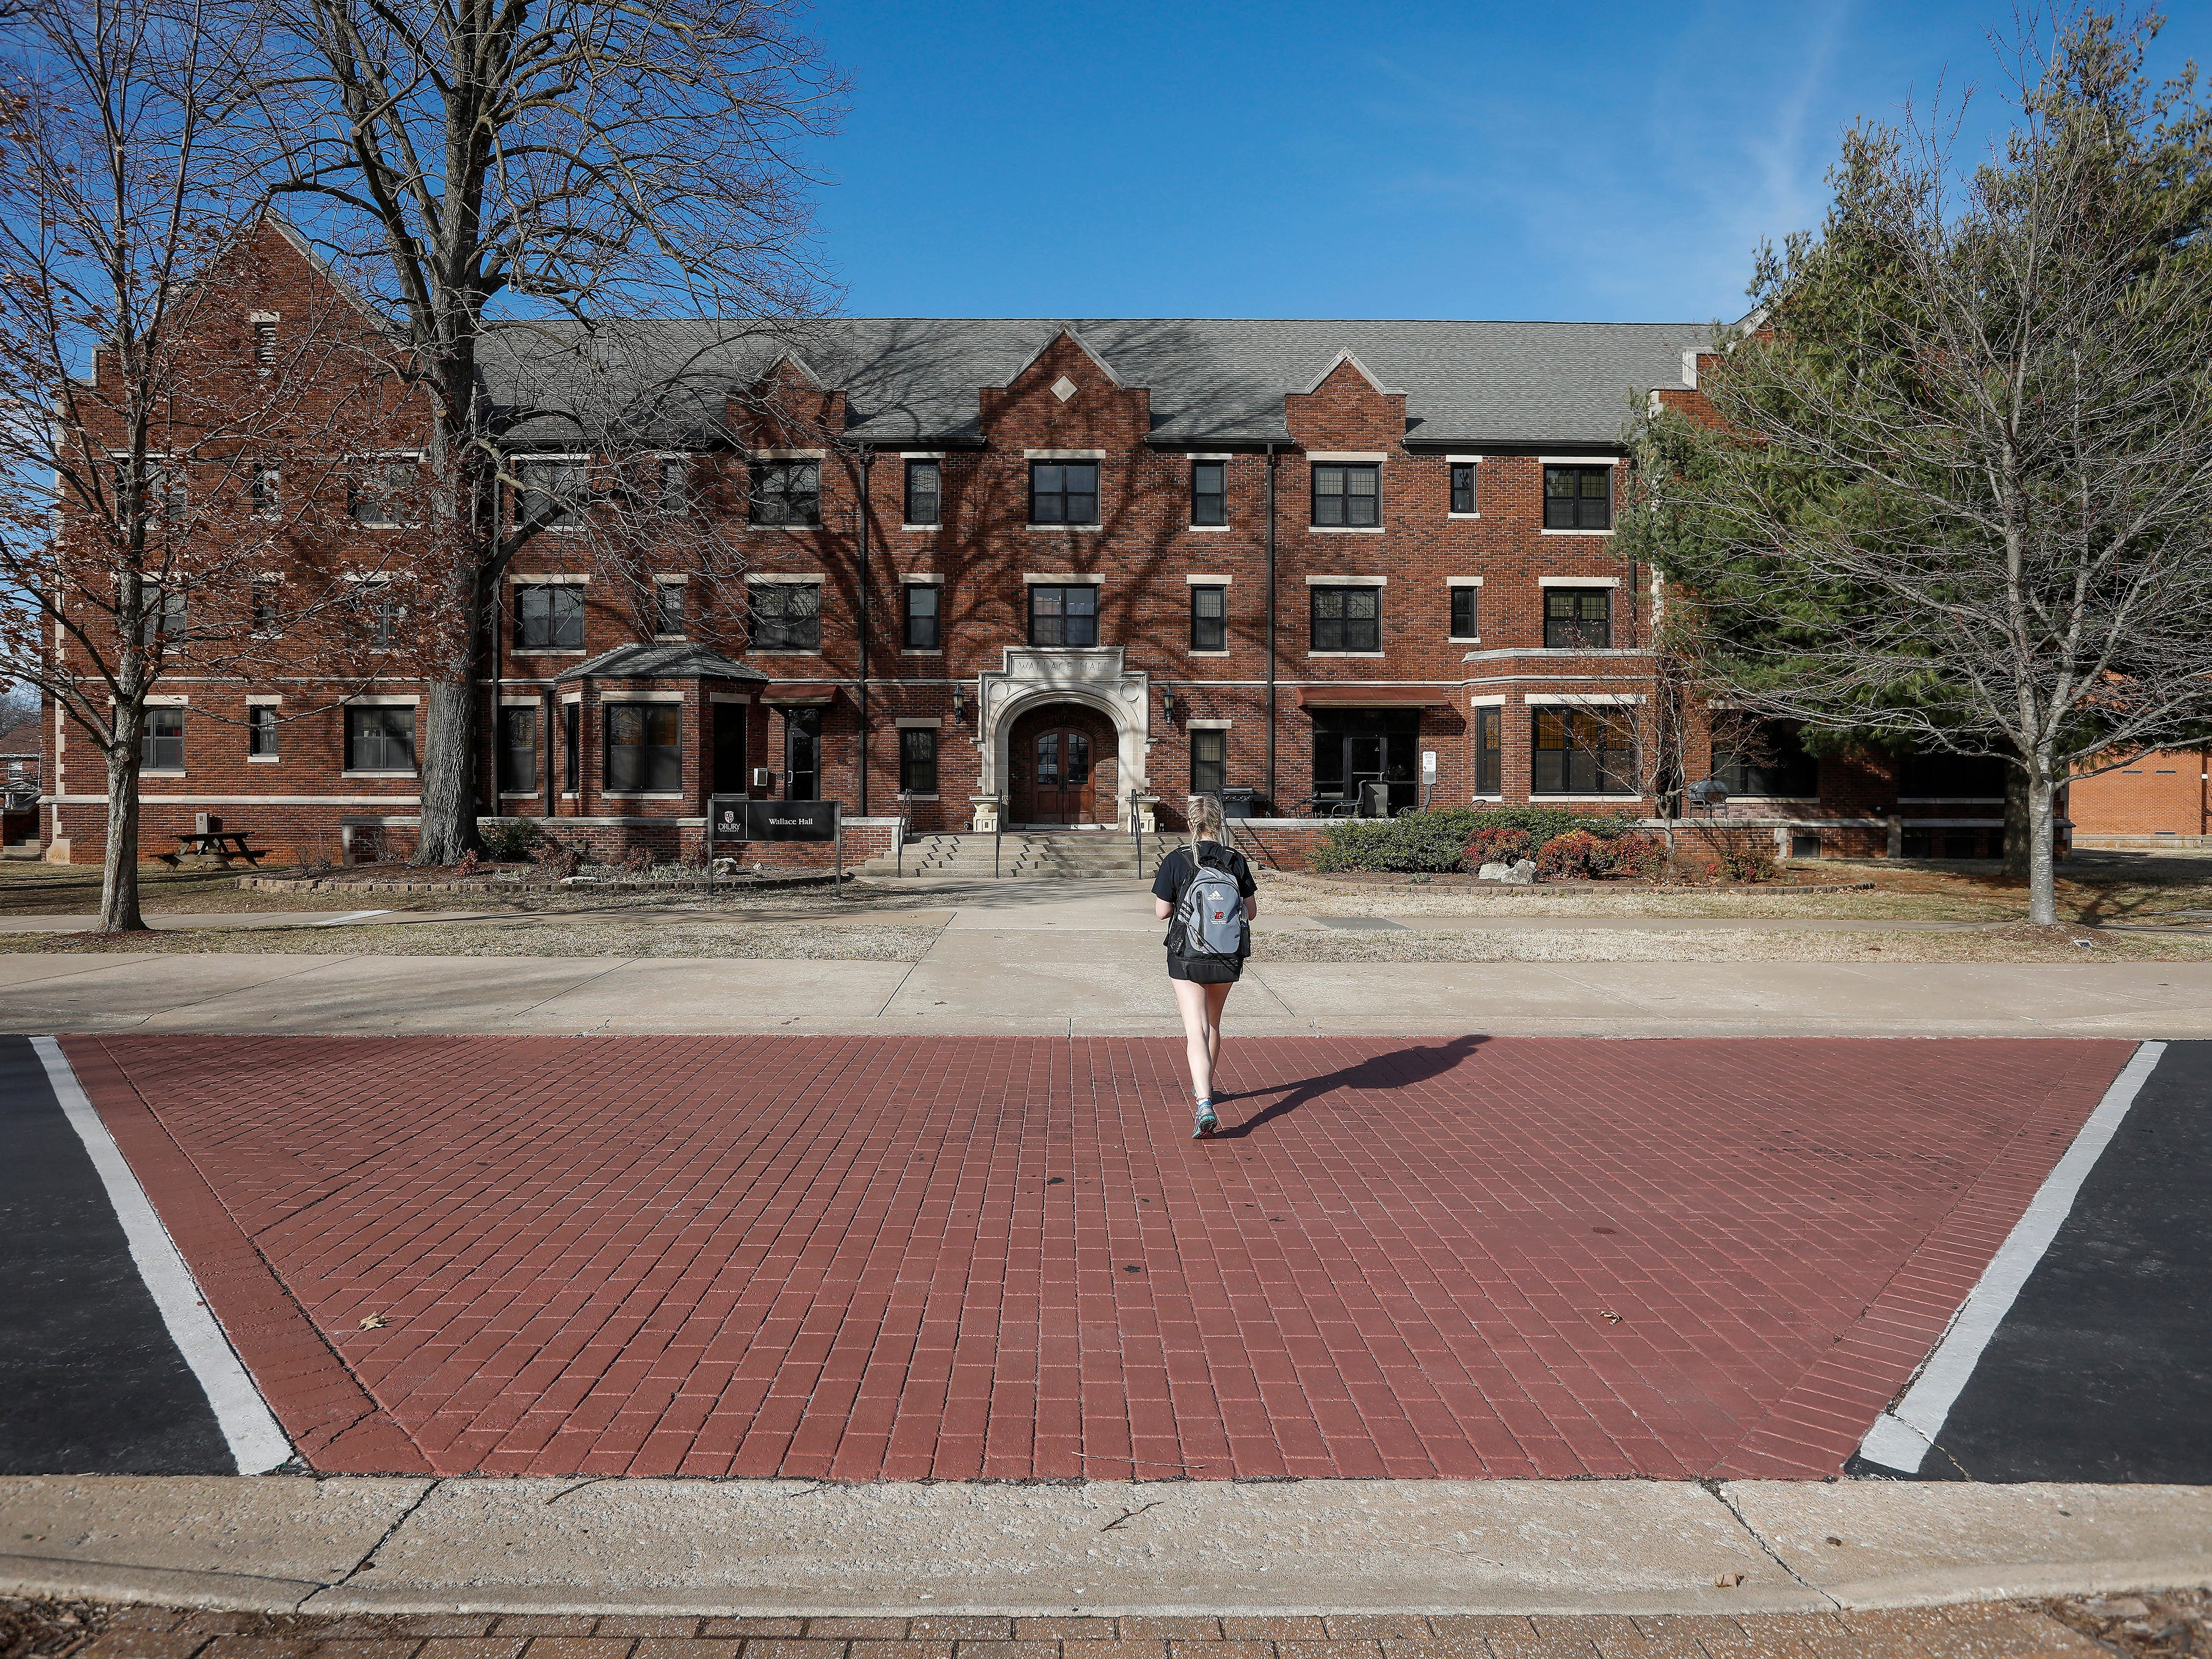 A student walks toward Wallace Hall on the campus of Drury University on Thursday, Feb. 14, 2019. Temperatures were in the low 60s on Thursday.